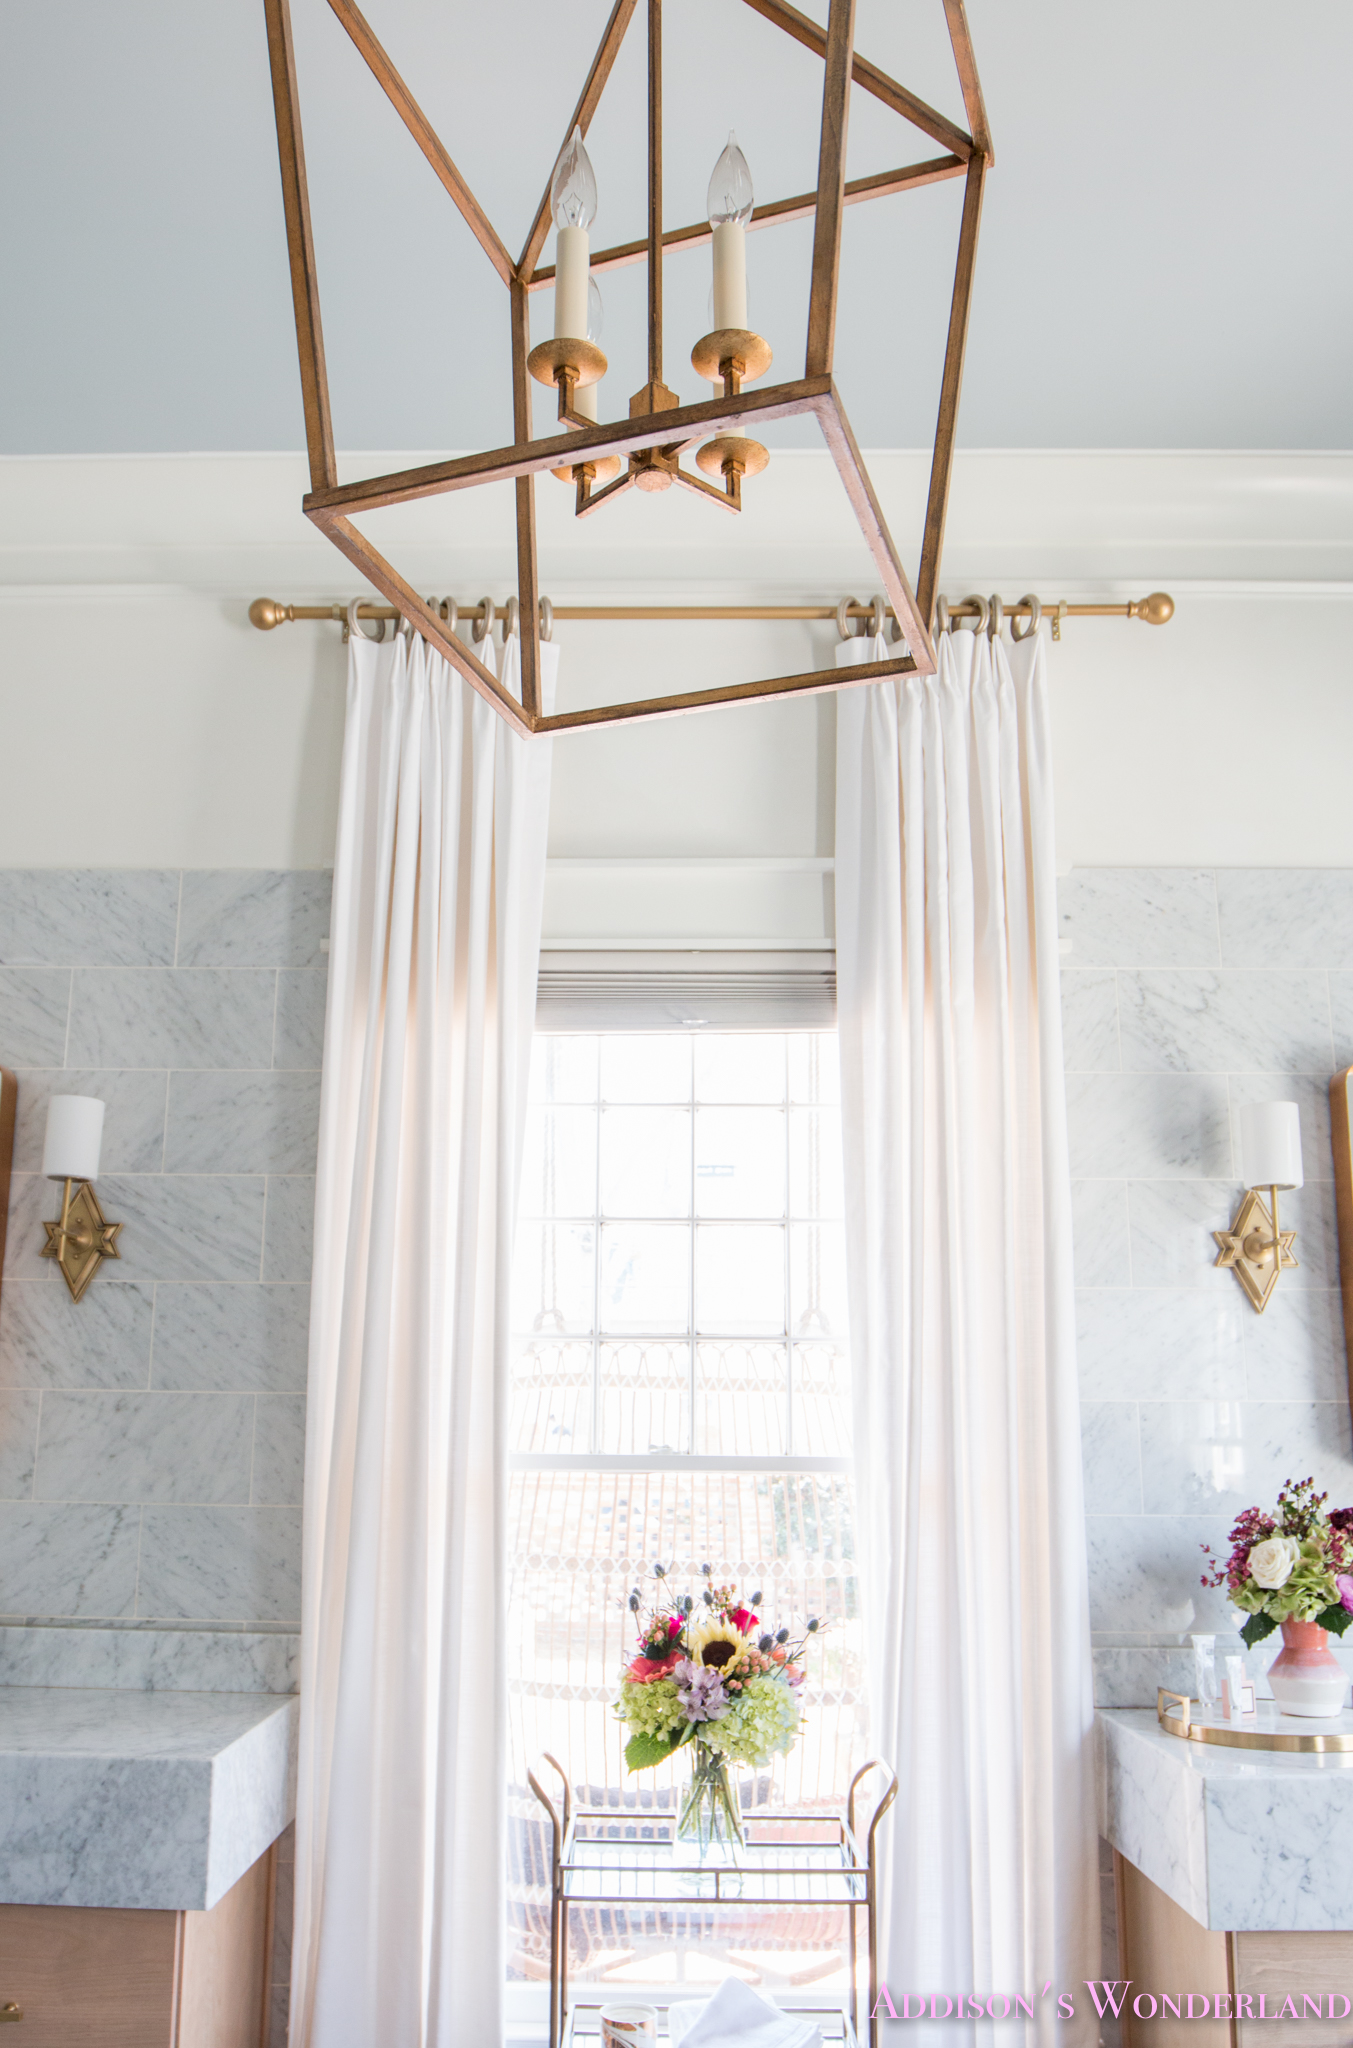 Our New Custom Master Bathroom Drapery From Willow Bloom Home